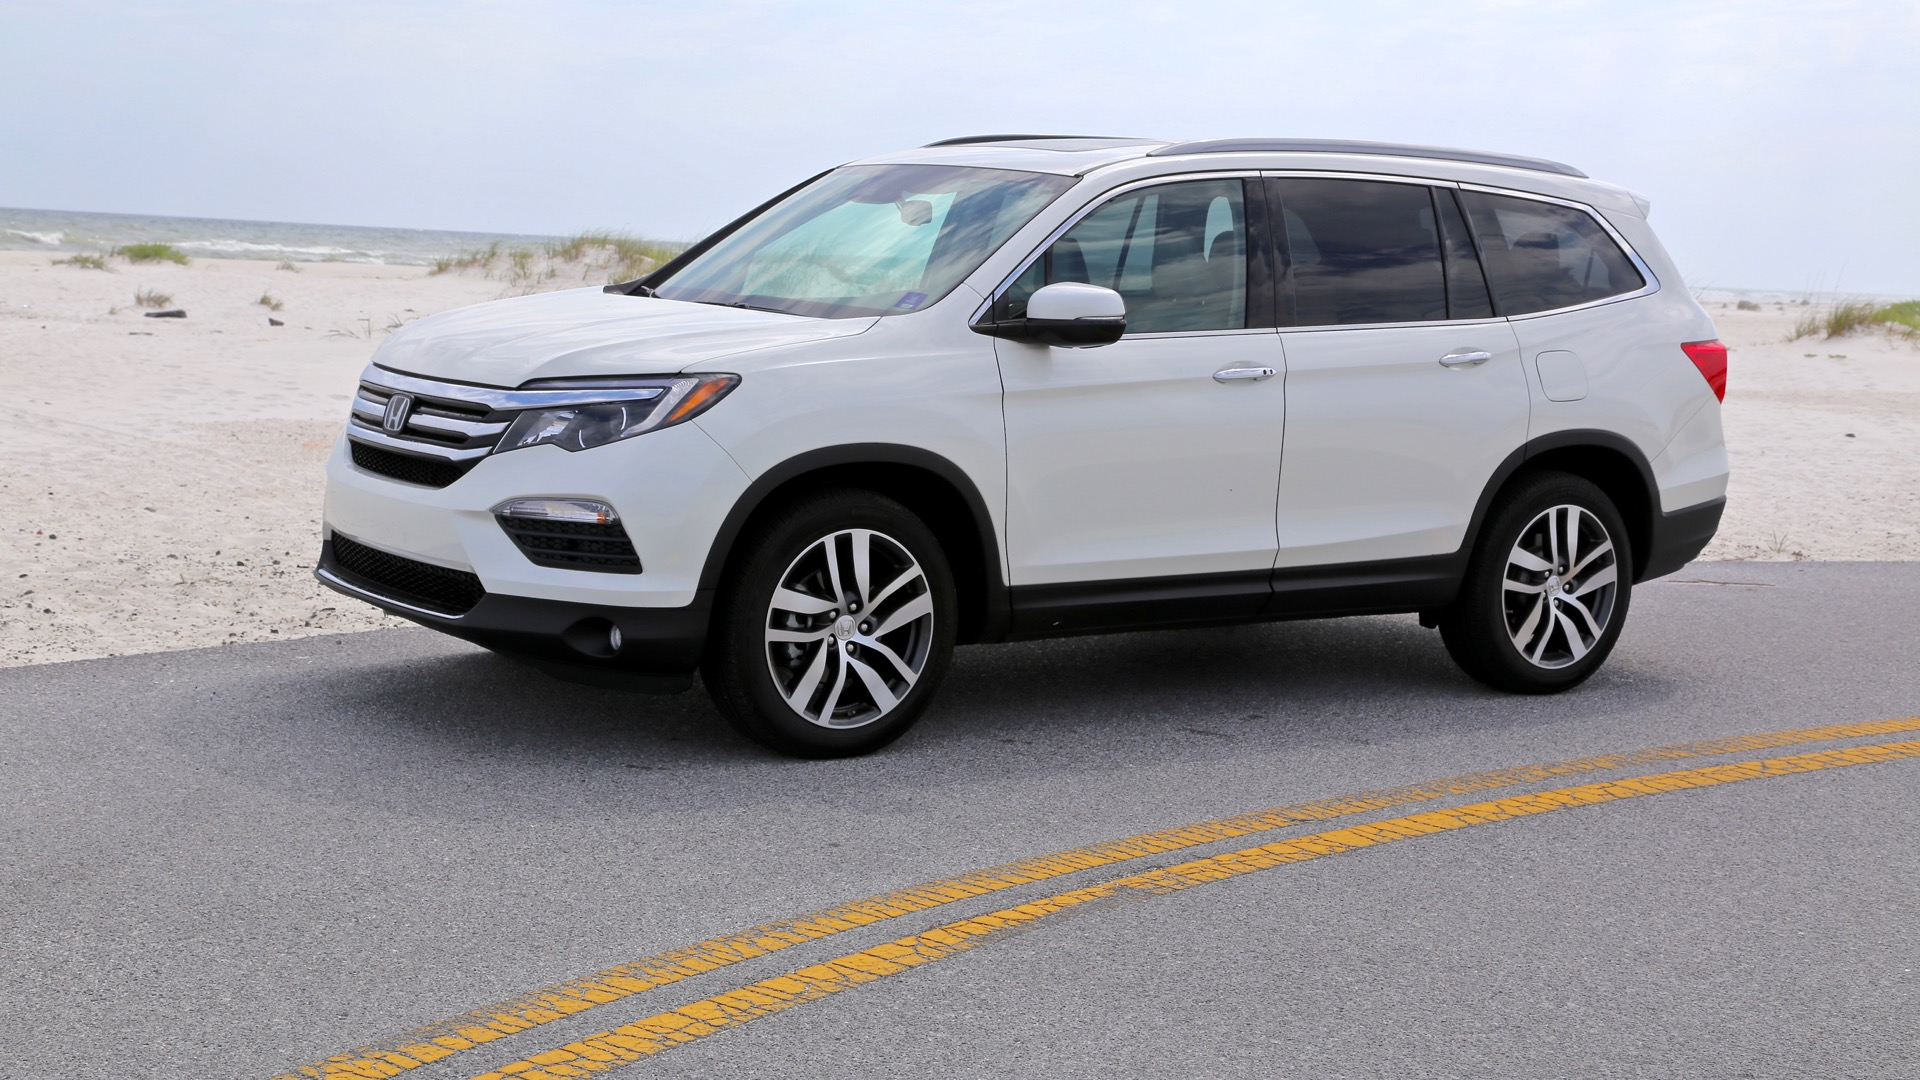 Toyota Kansas City >> 2016 Honda Pilot Touring long-term road test: what we'd change